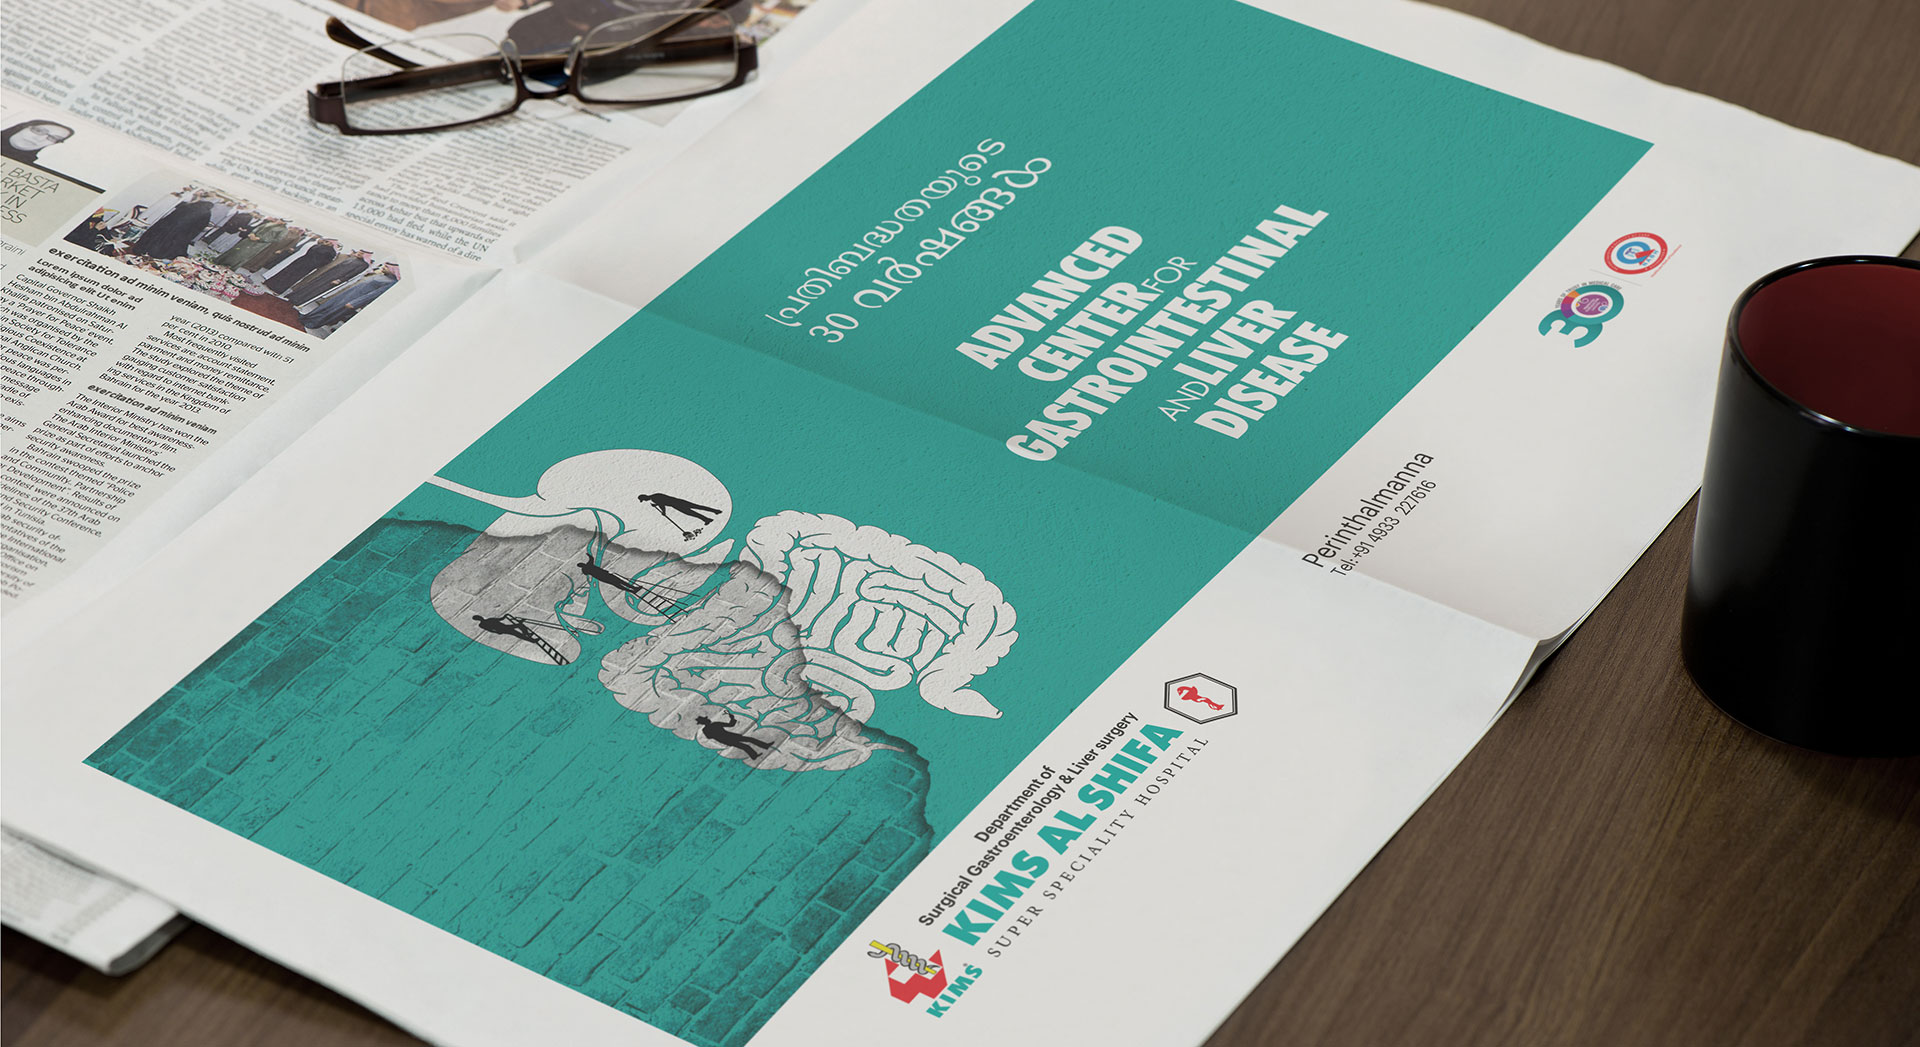 KIMS Al Shifa Hospital - 30 years of responsibility advertisement on newspaper